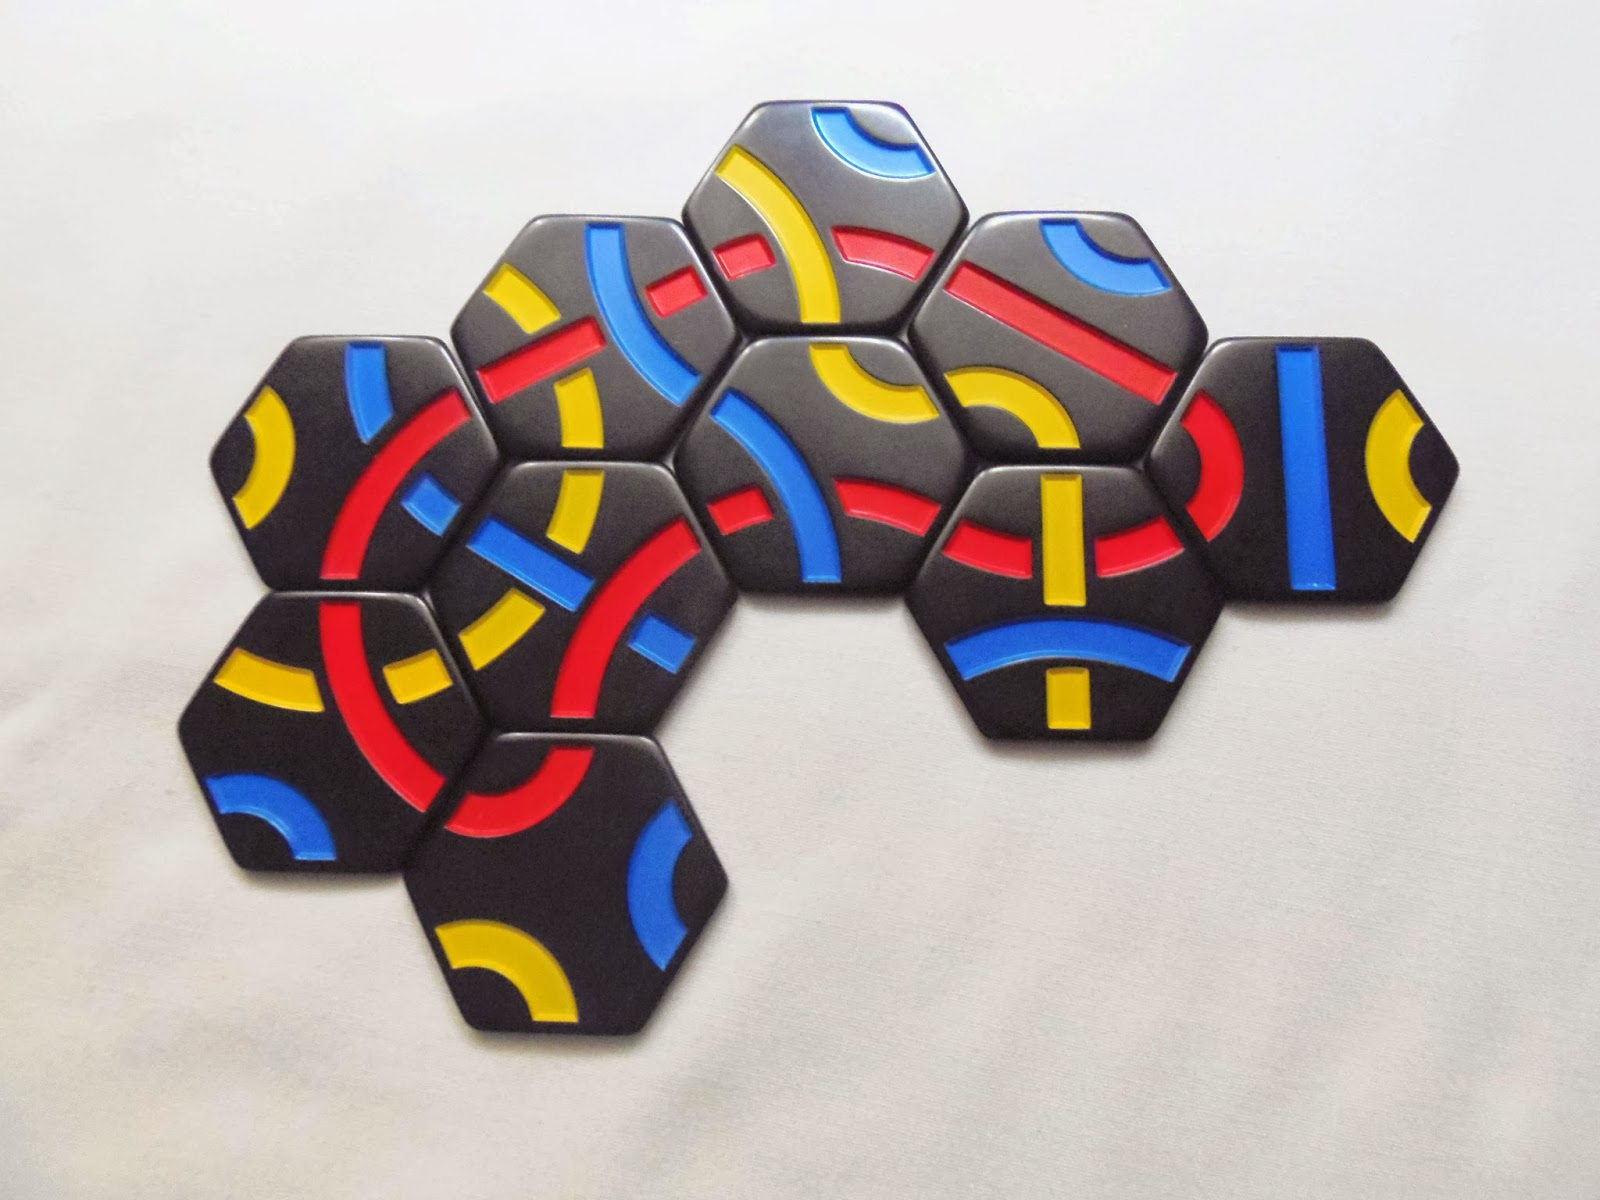 12 hexominoes that will make a cube